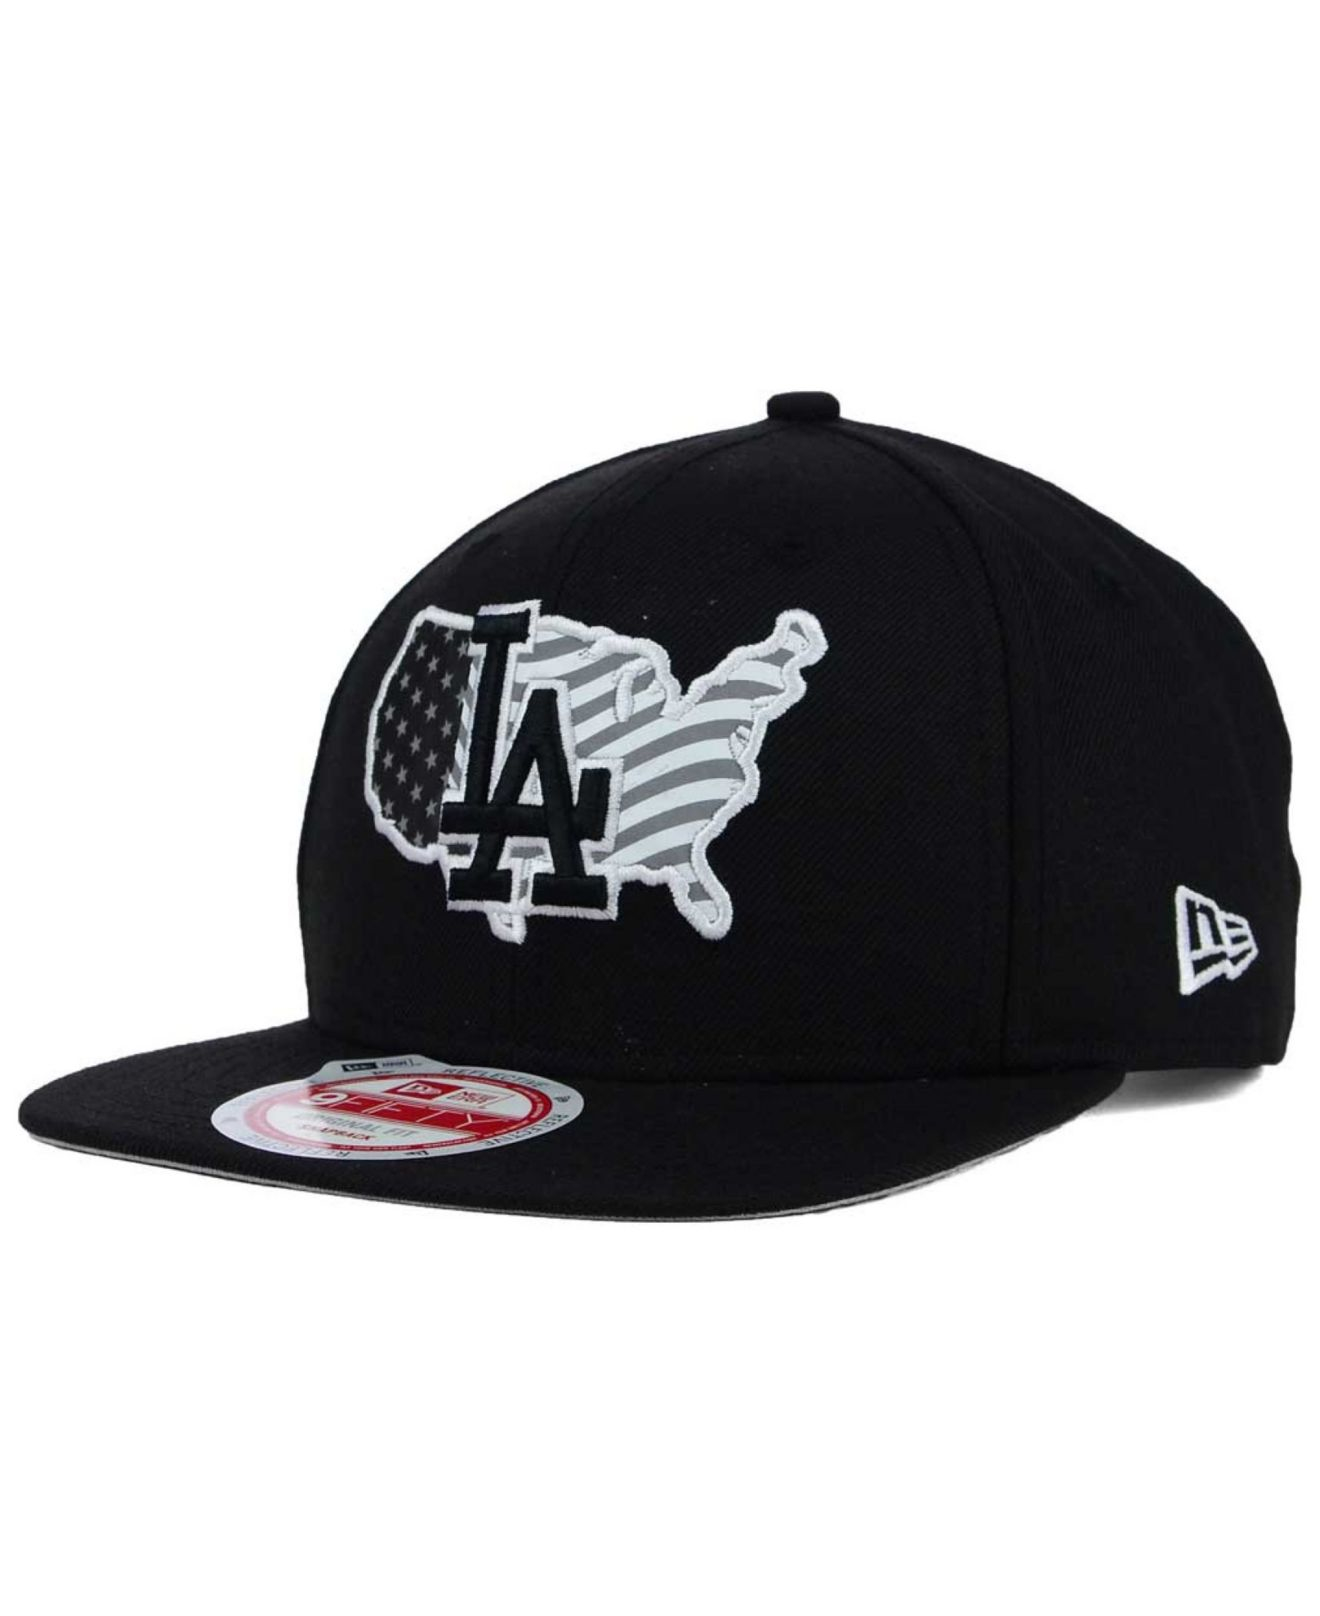 Lyst - KTZ Los Angeles Dodgers Usa Reflective 9fifty Snapback Cap in ... 3546e10781df